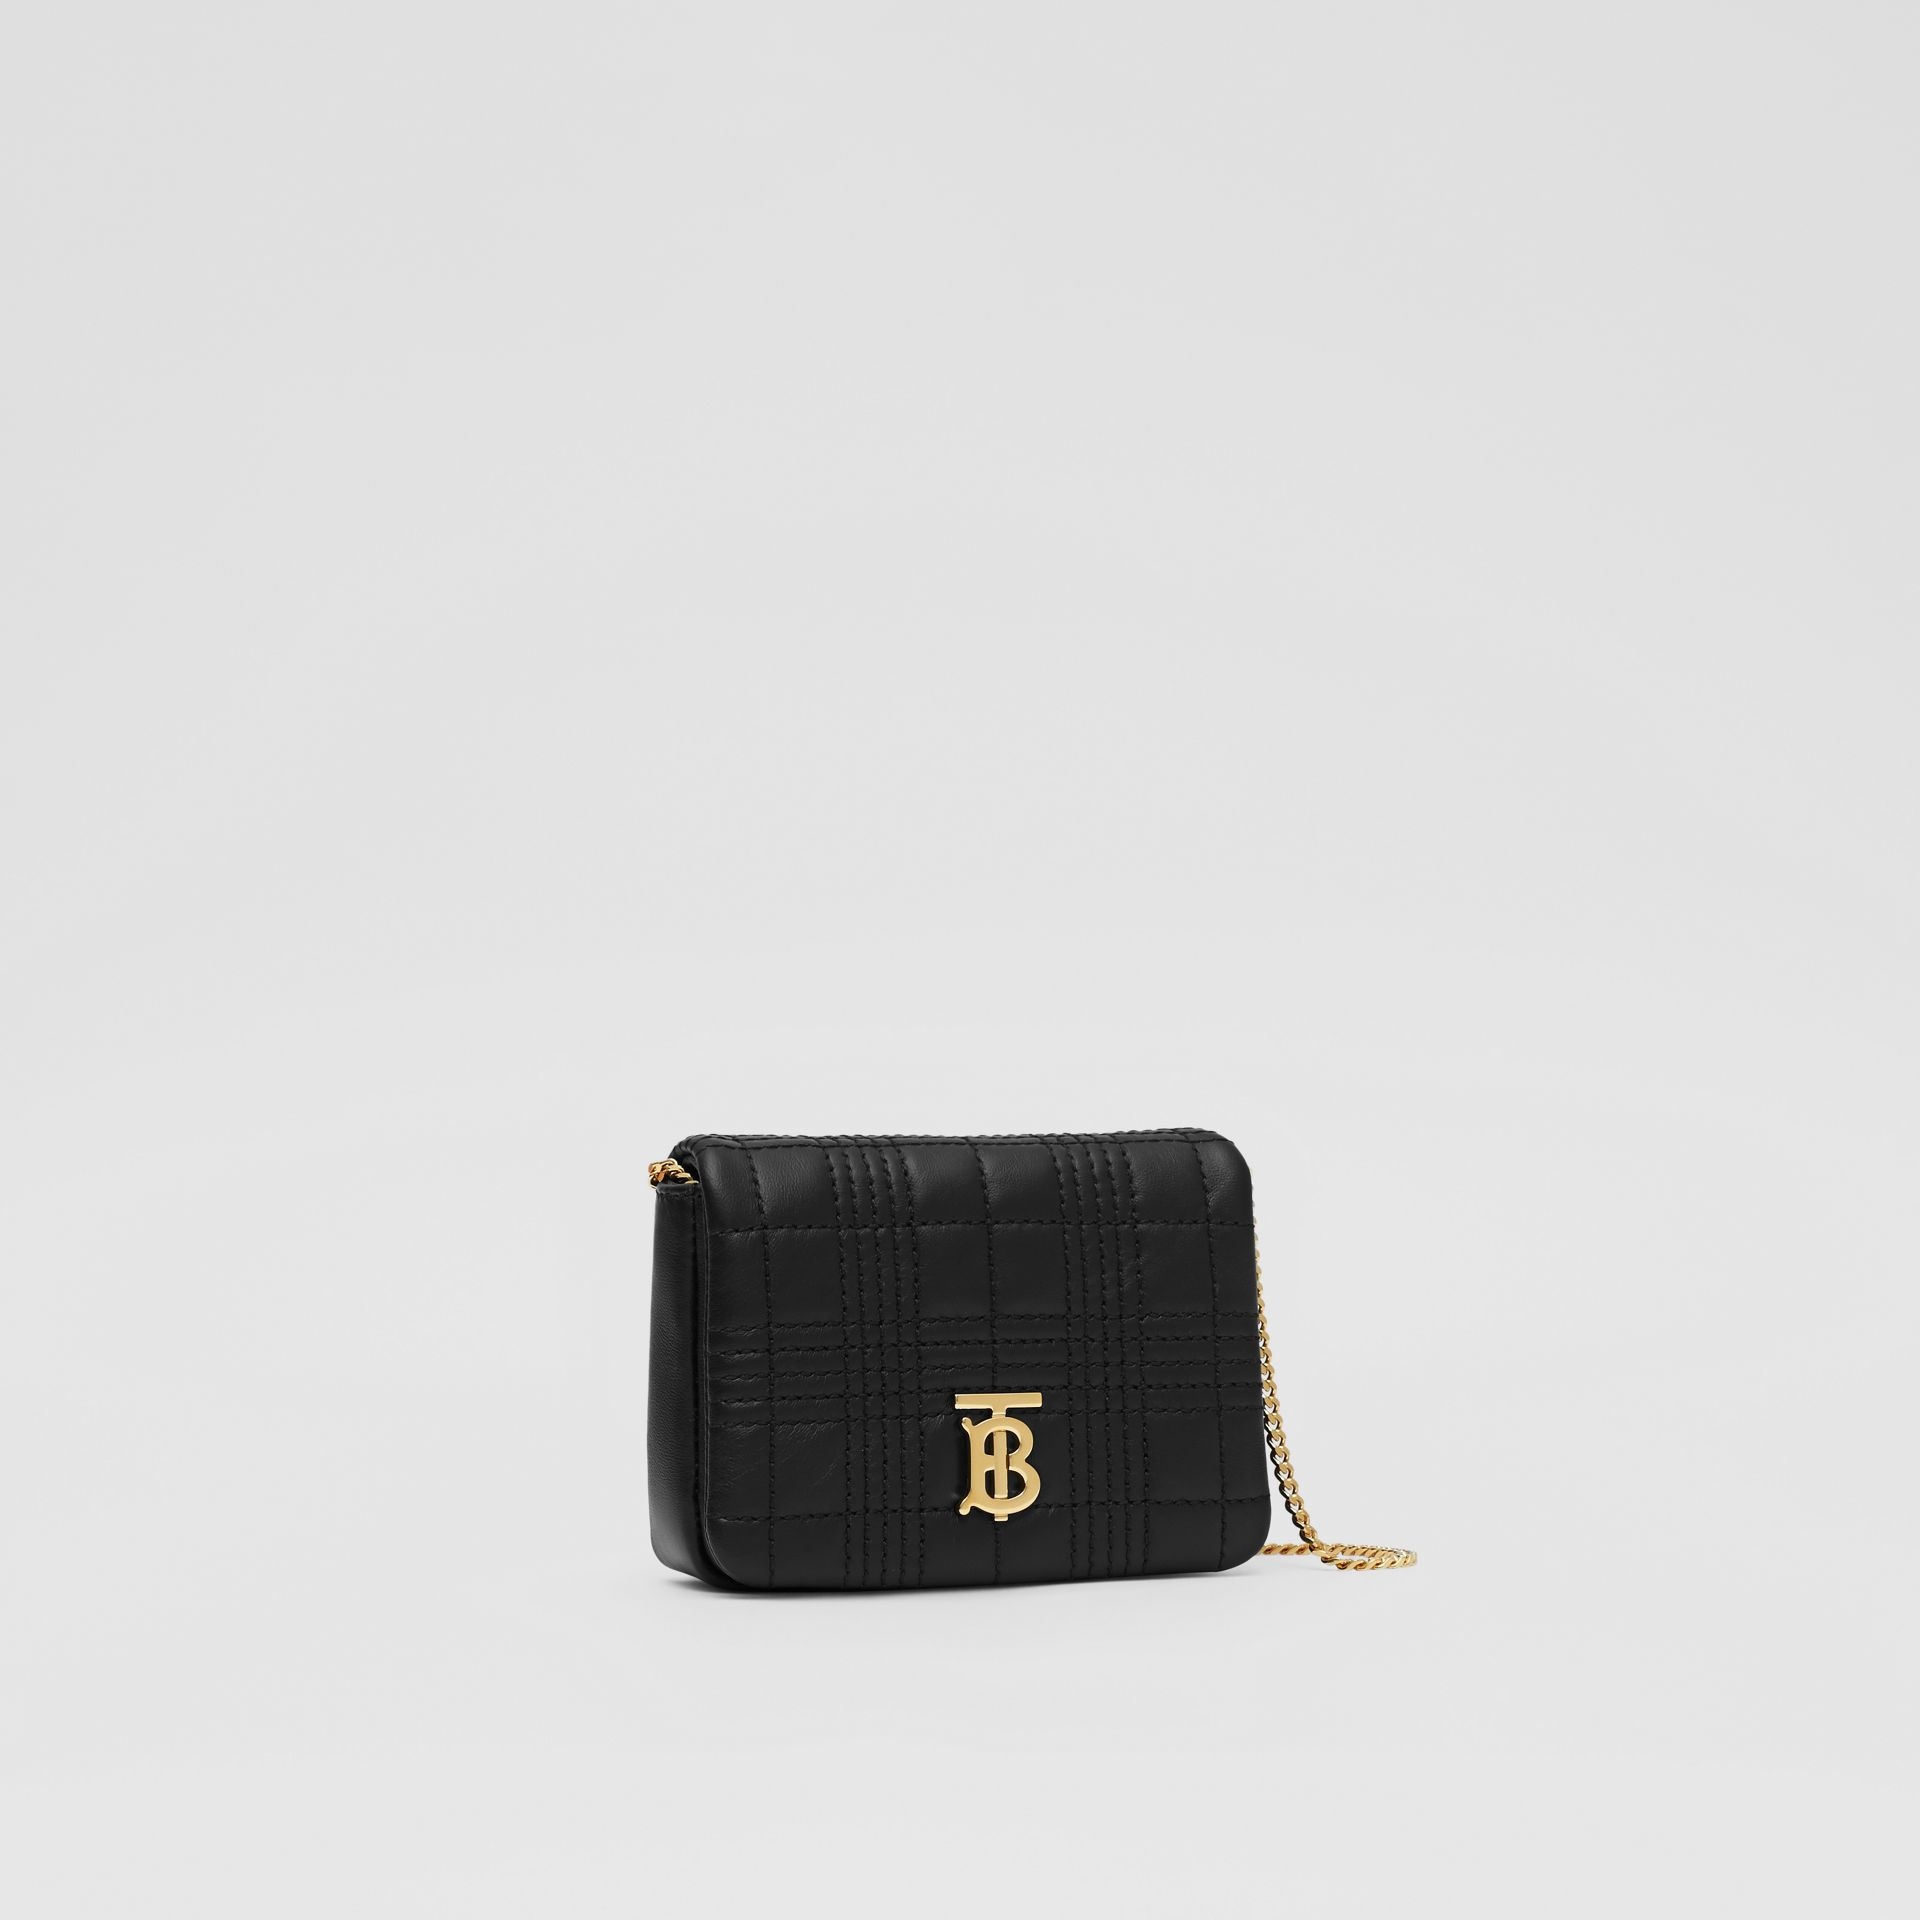 Micro Quilted Lambskin Lola Bag in Black - Women | Burberry - gallery image 4